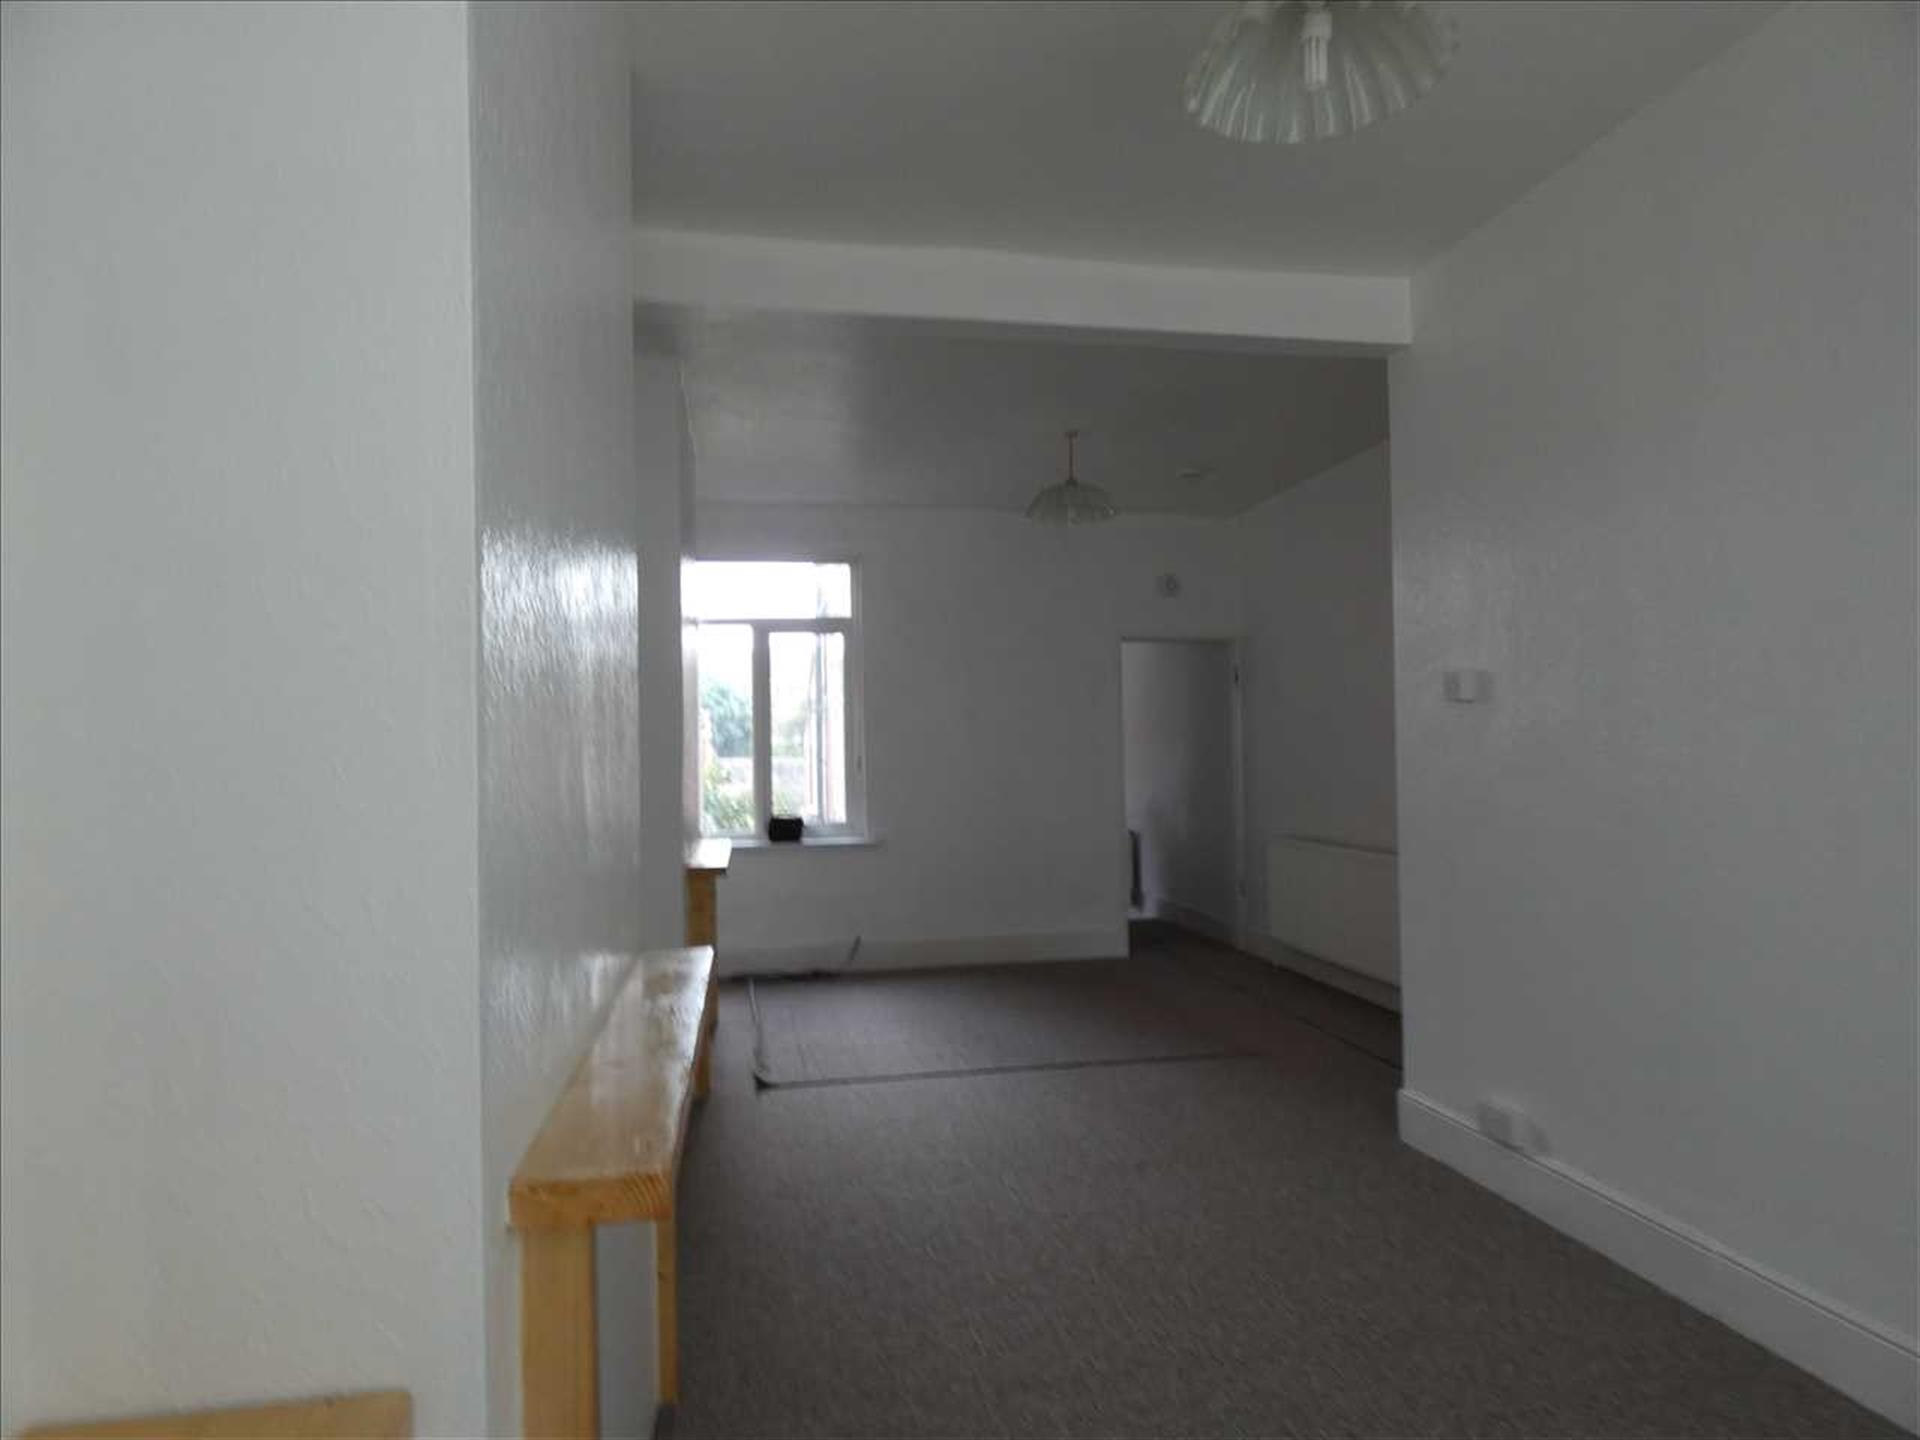 3 Bedroom Terraced House For Sale - Through Lounge